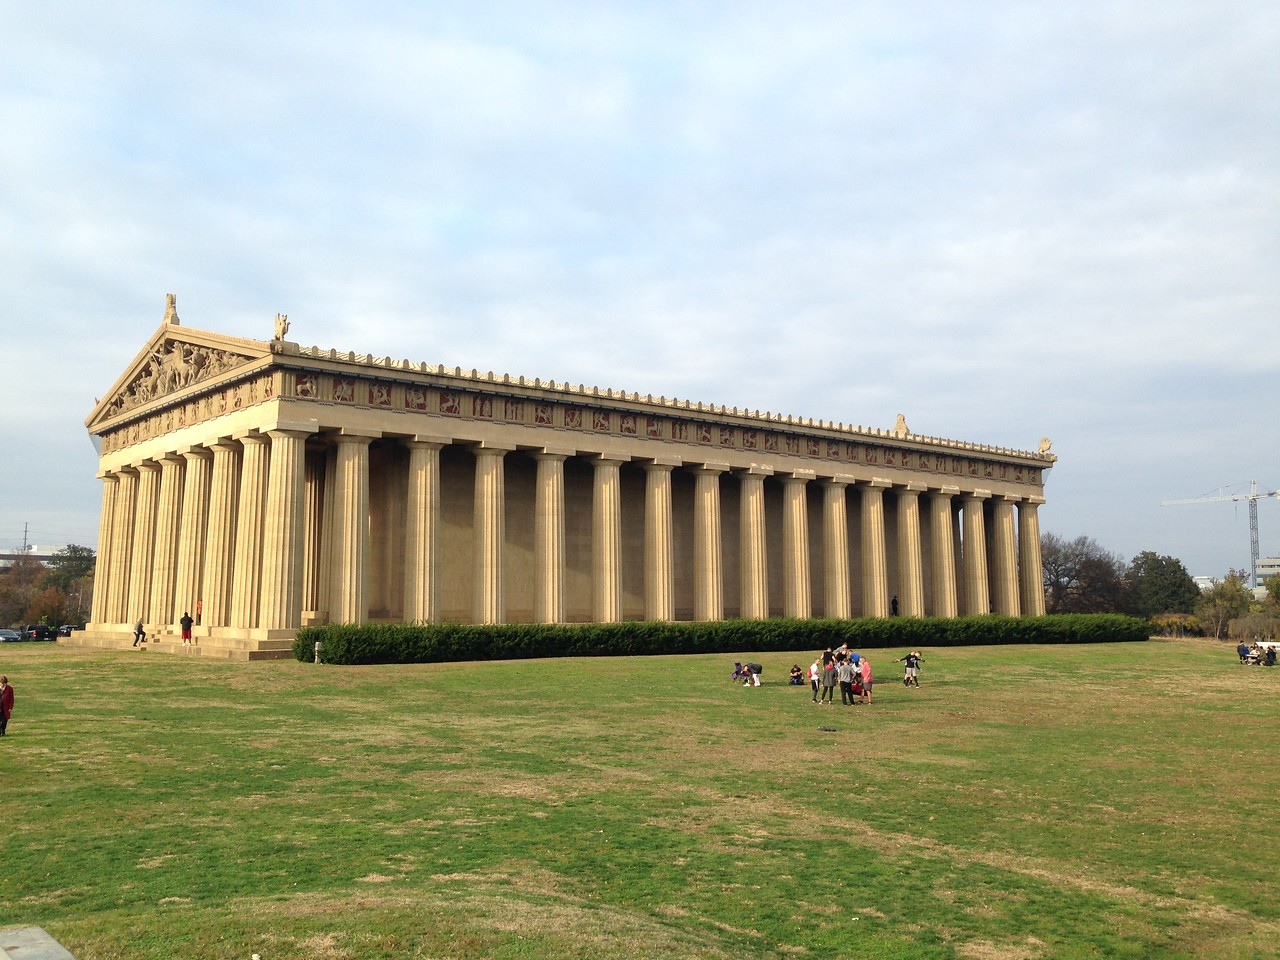 Then we went to the Parthenon! Dating from 1897, that is. Much improved over the original because, as you can see, OURS has not fallen apart.